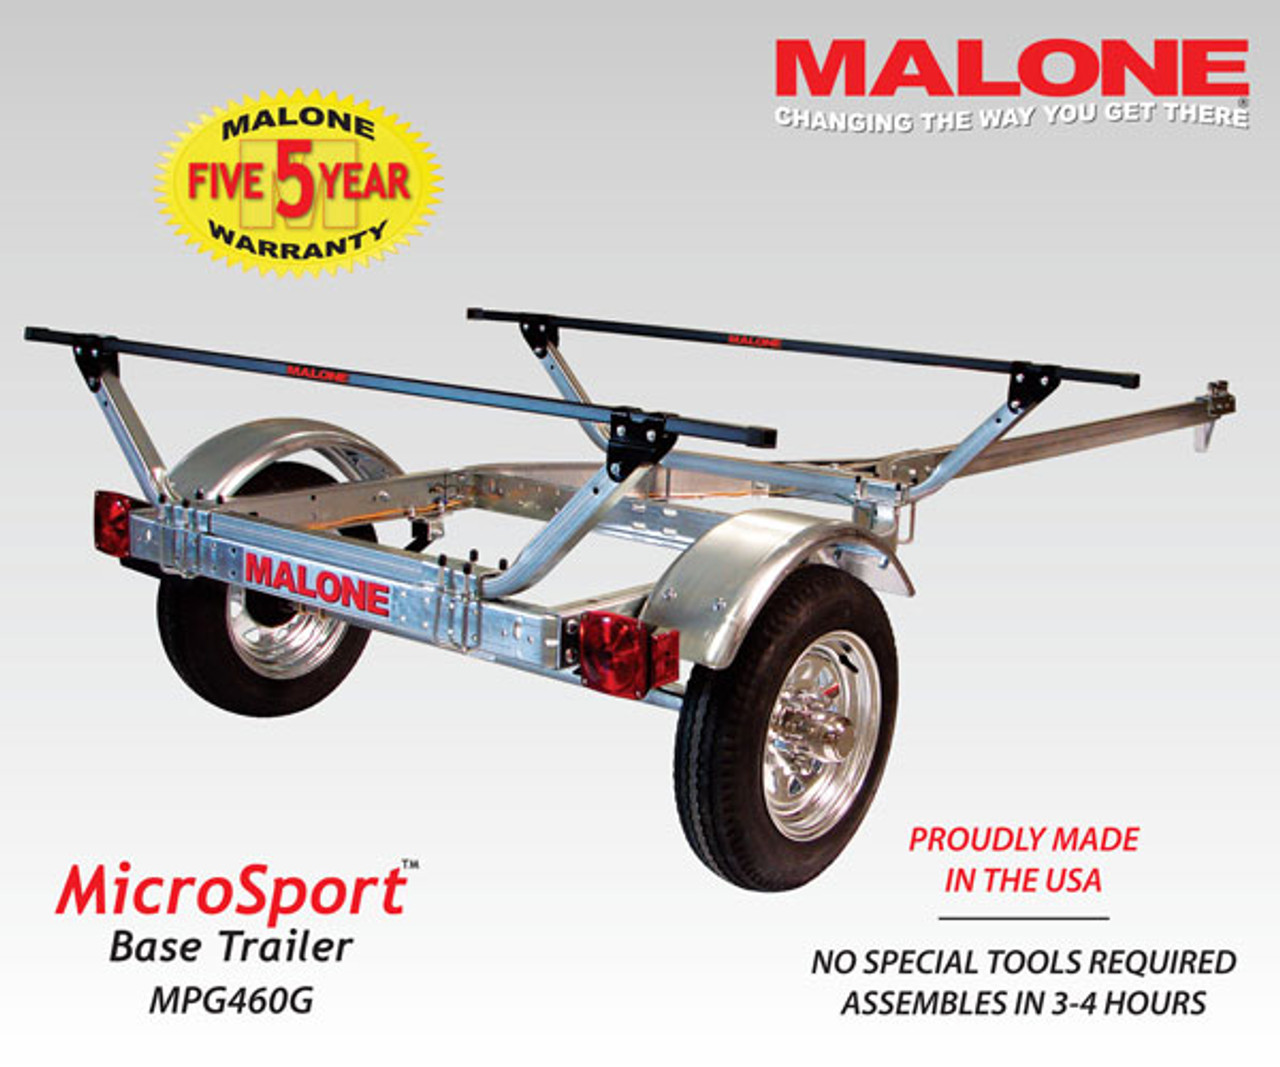 The microsport trailer fully assembled and ready for kayaks.